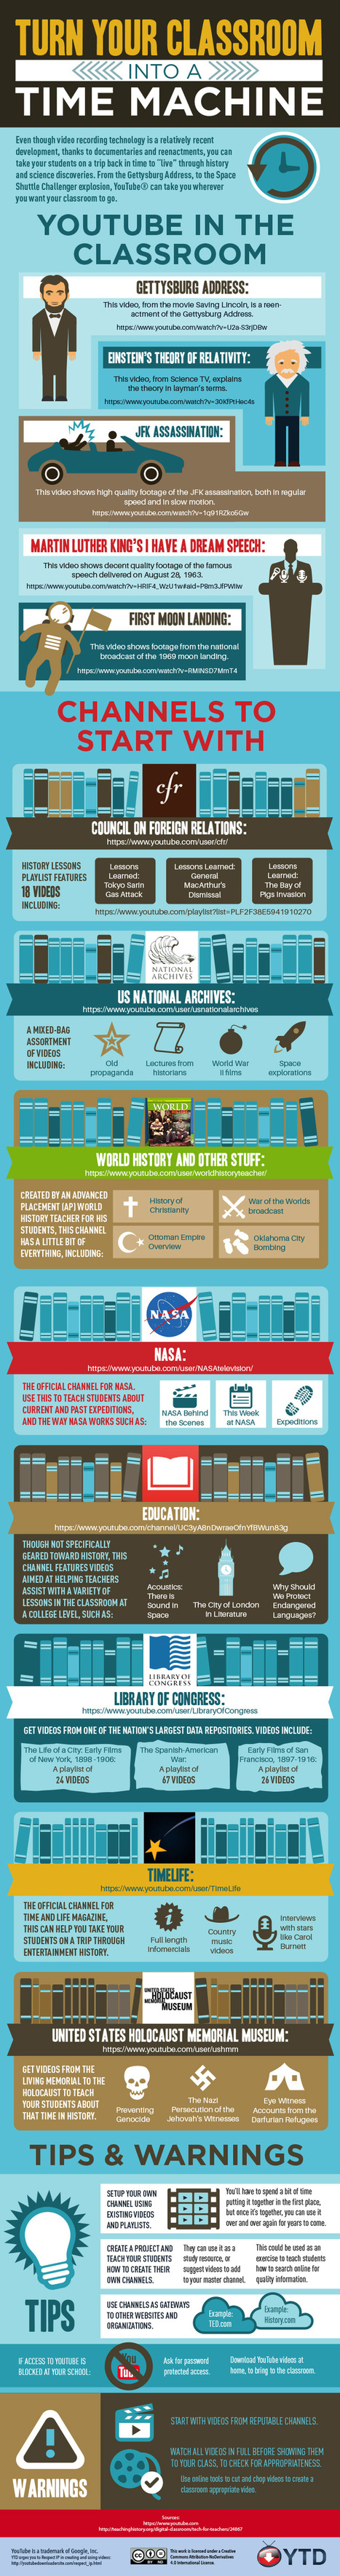 Using YouTube as a Time Machine for Your Classroom #Infographic | Social Media 4 Education | Scoop.it